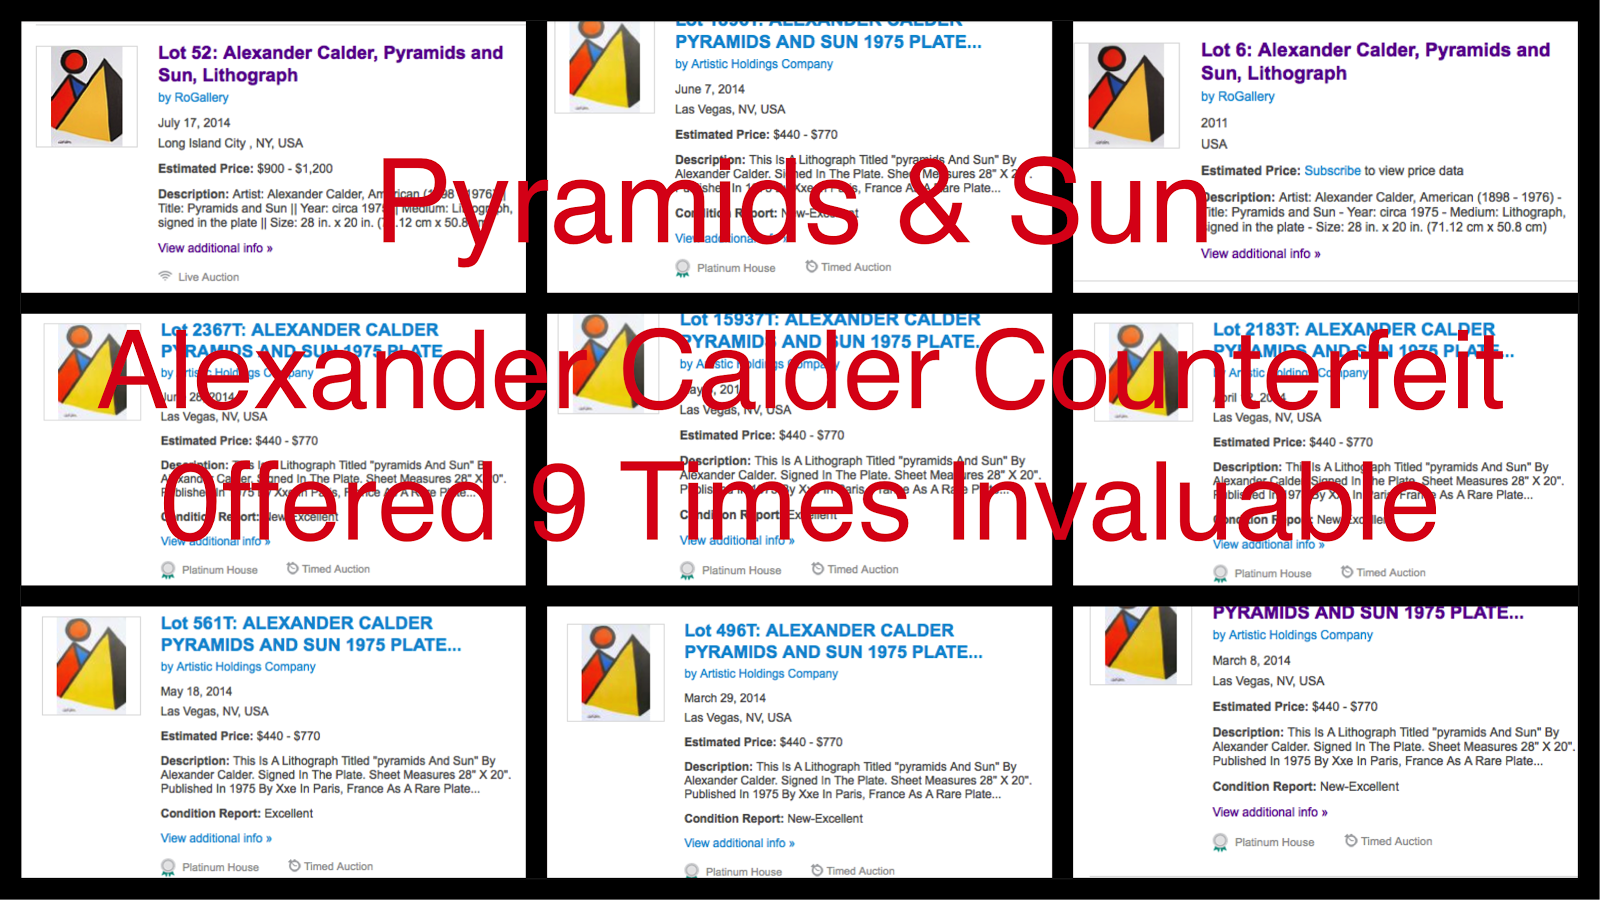 Calder Counterfeit titled Pyramids & Sun offered 9 Times on Invaluable